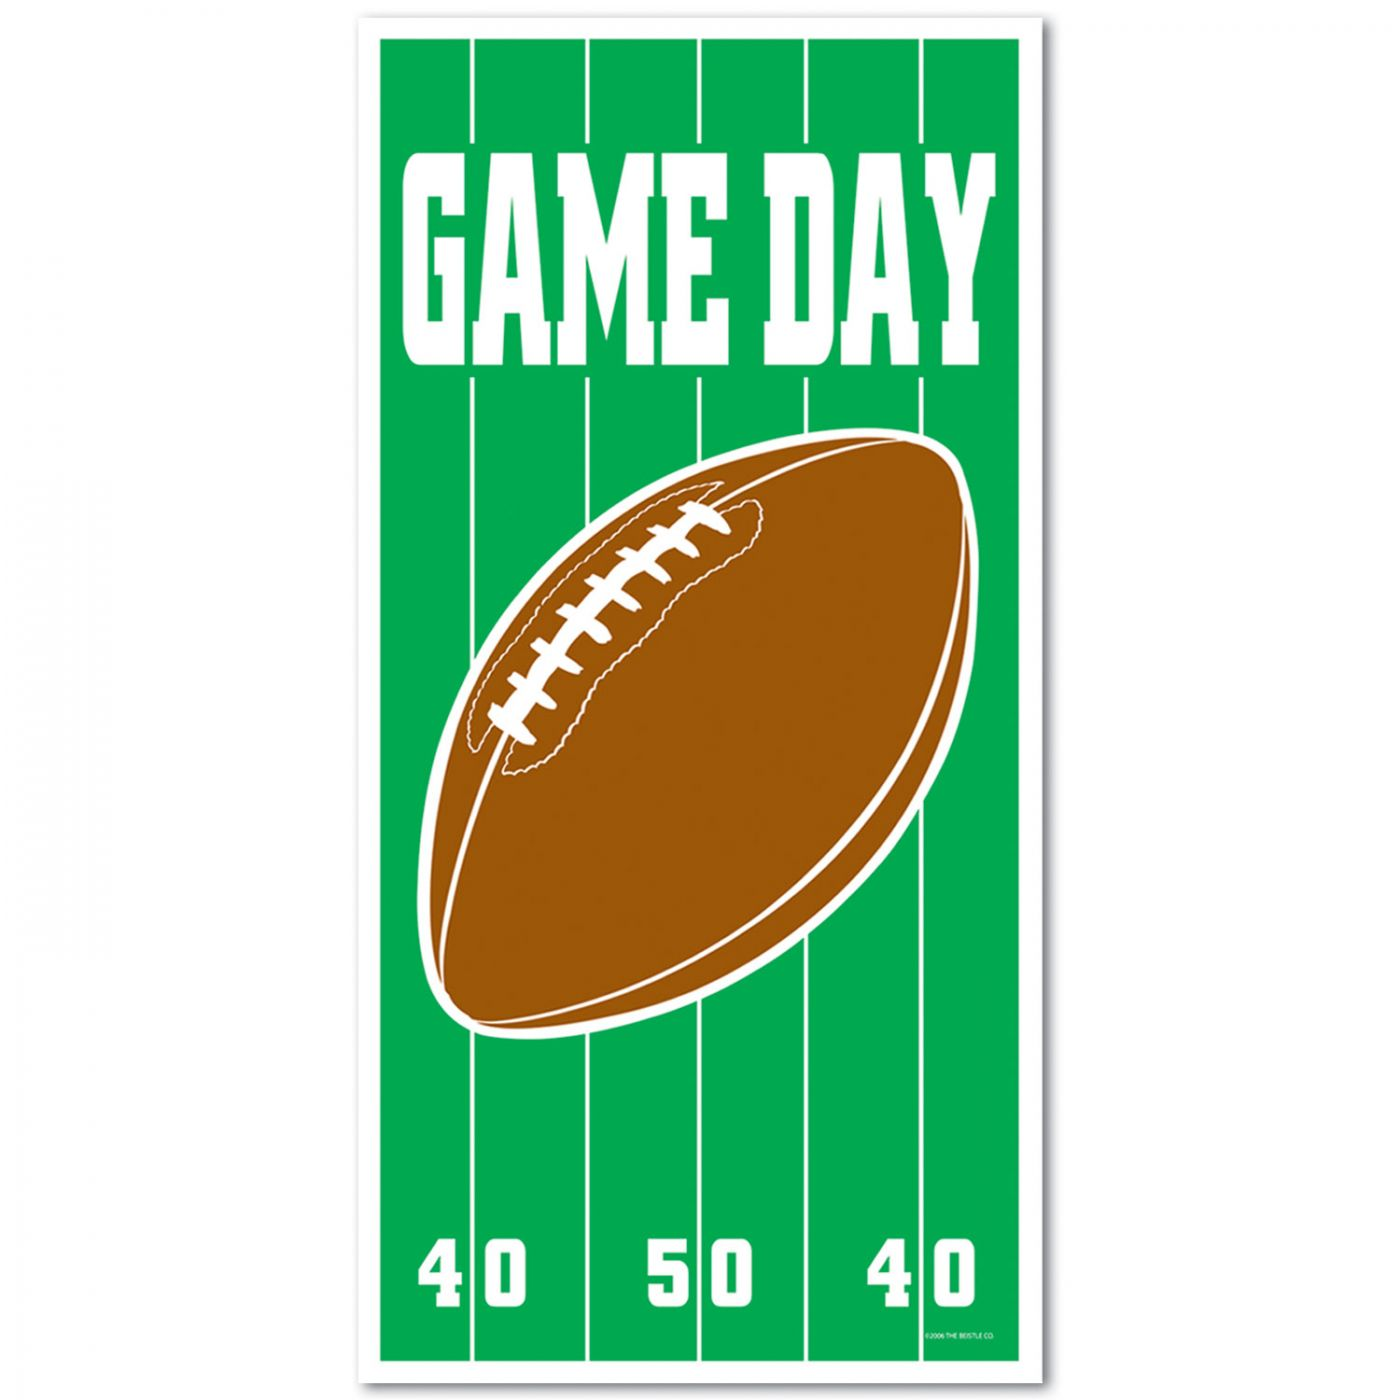 Game Day Football Door Cover image